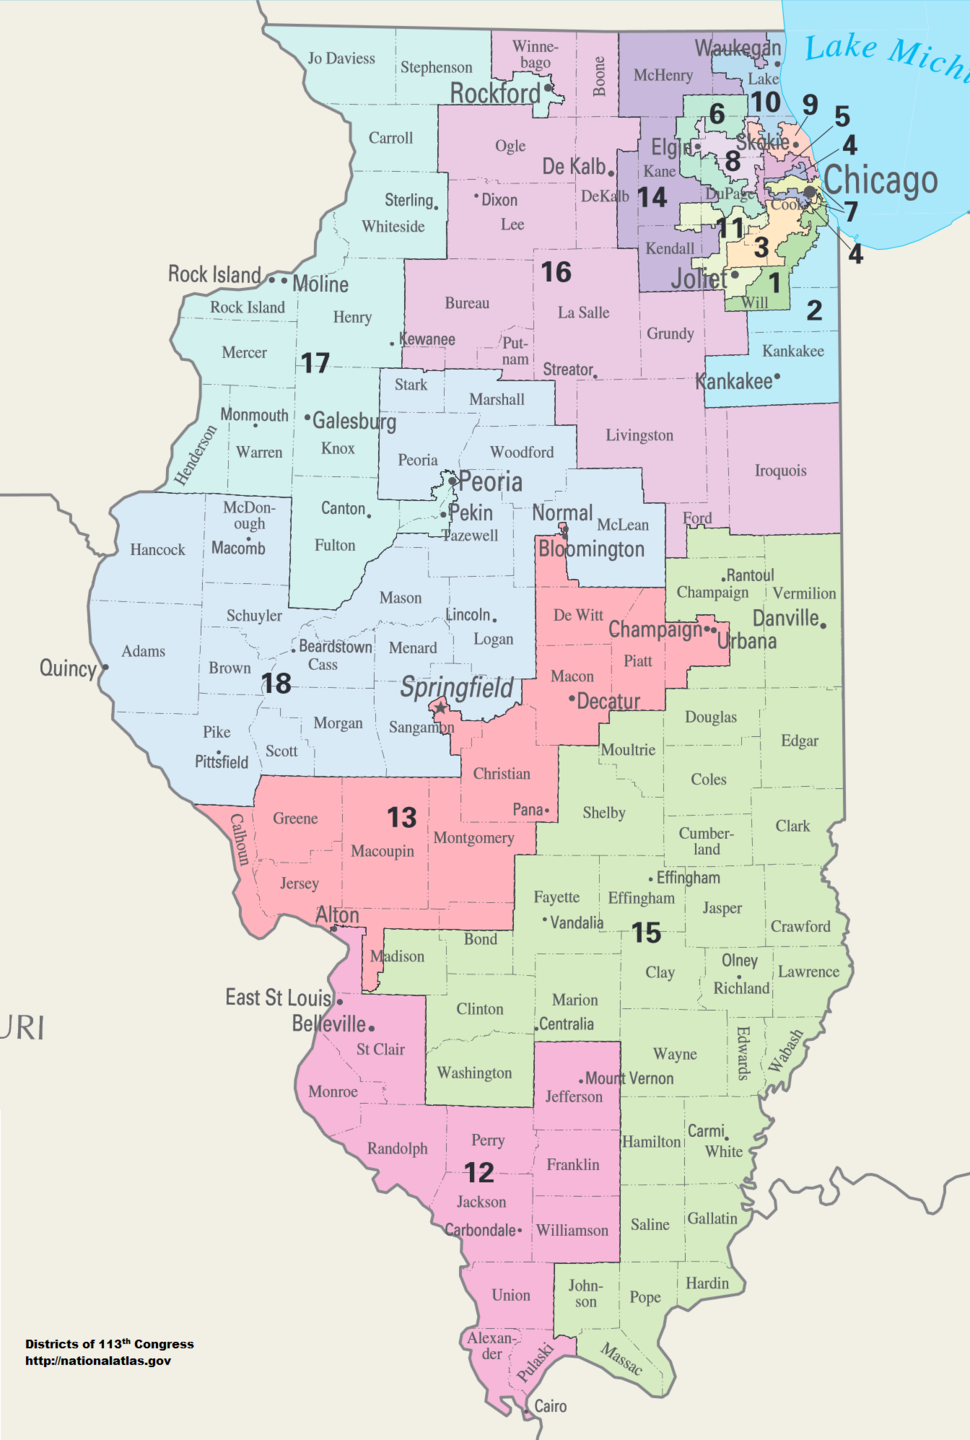 Illinois Congressional Districts, 113th Congress